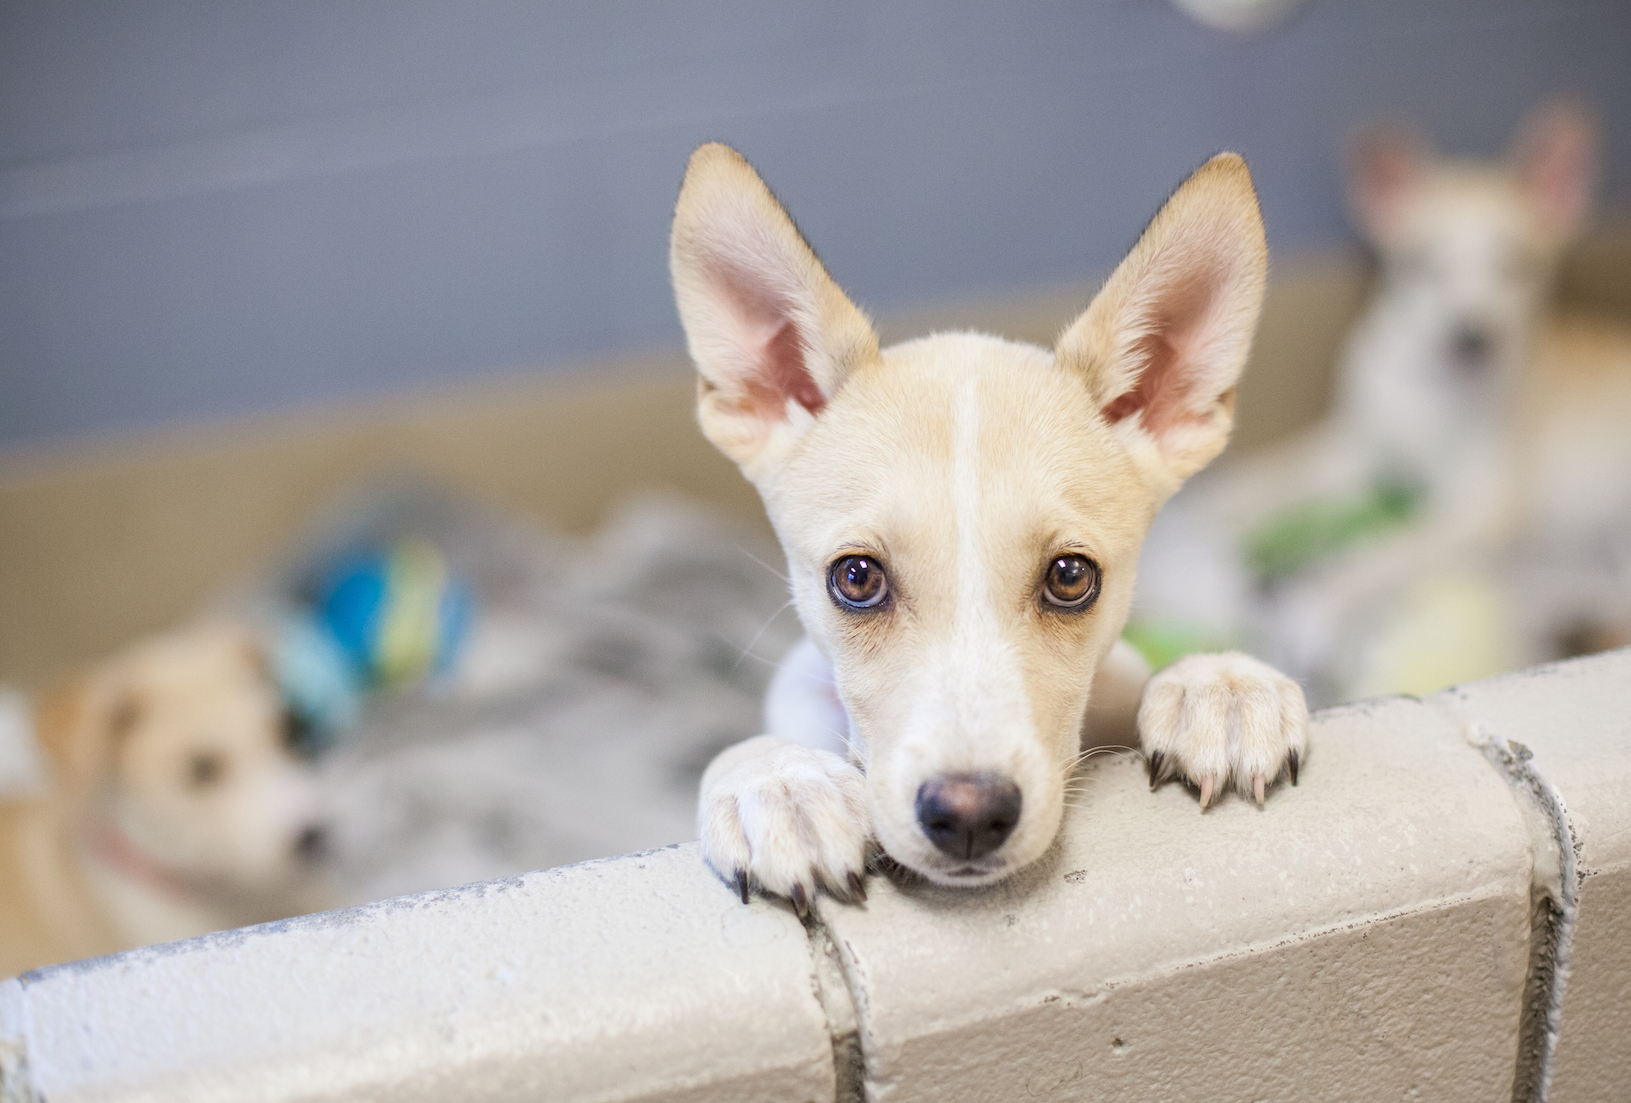 Labels can greatly influence how long it takes for shelter dogs to be adopted, primarily because of the associated behaviors.